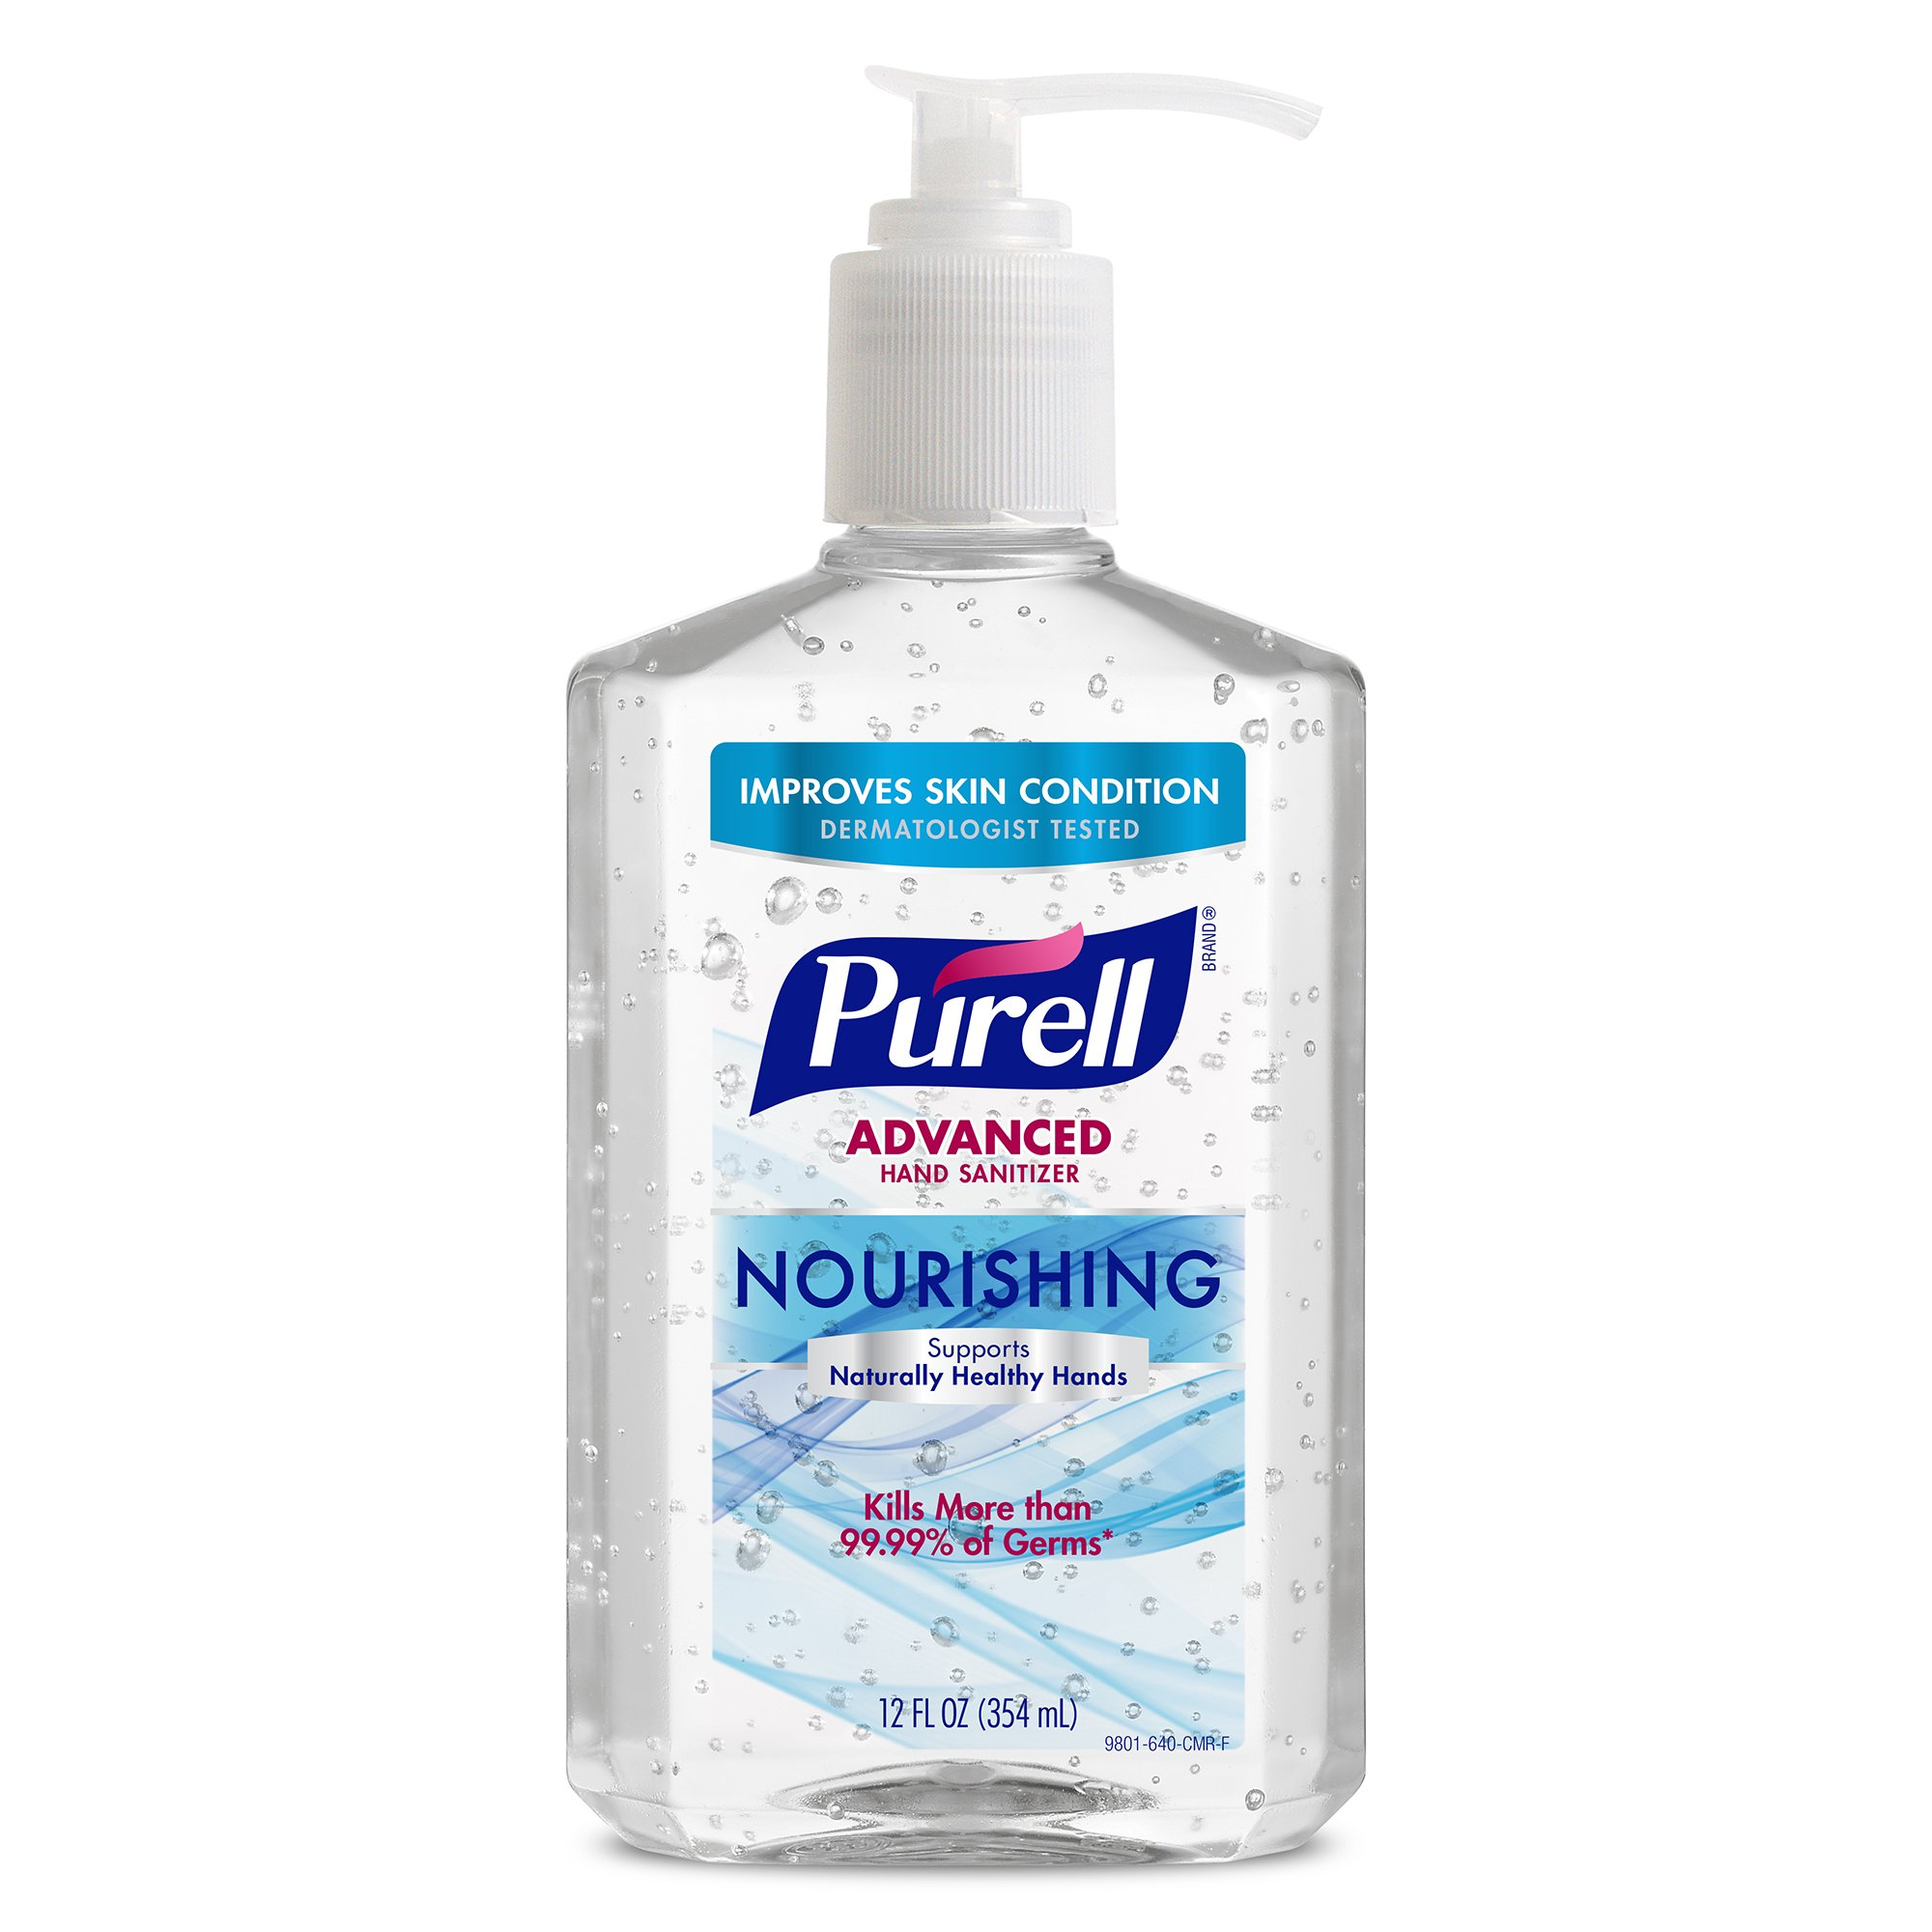 PURELL Advanced Nourishing Hand Sanitizer 12oz Pump Bottle (Pack of 18) by Purell